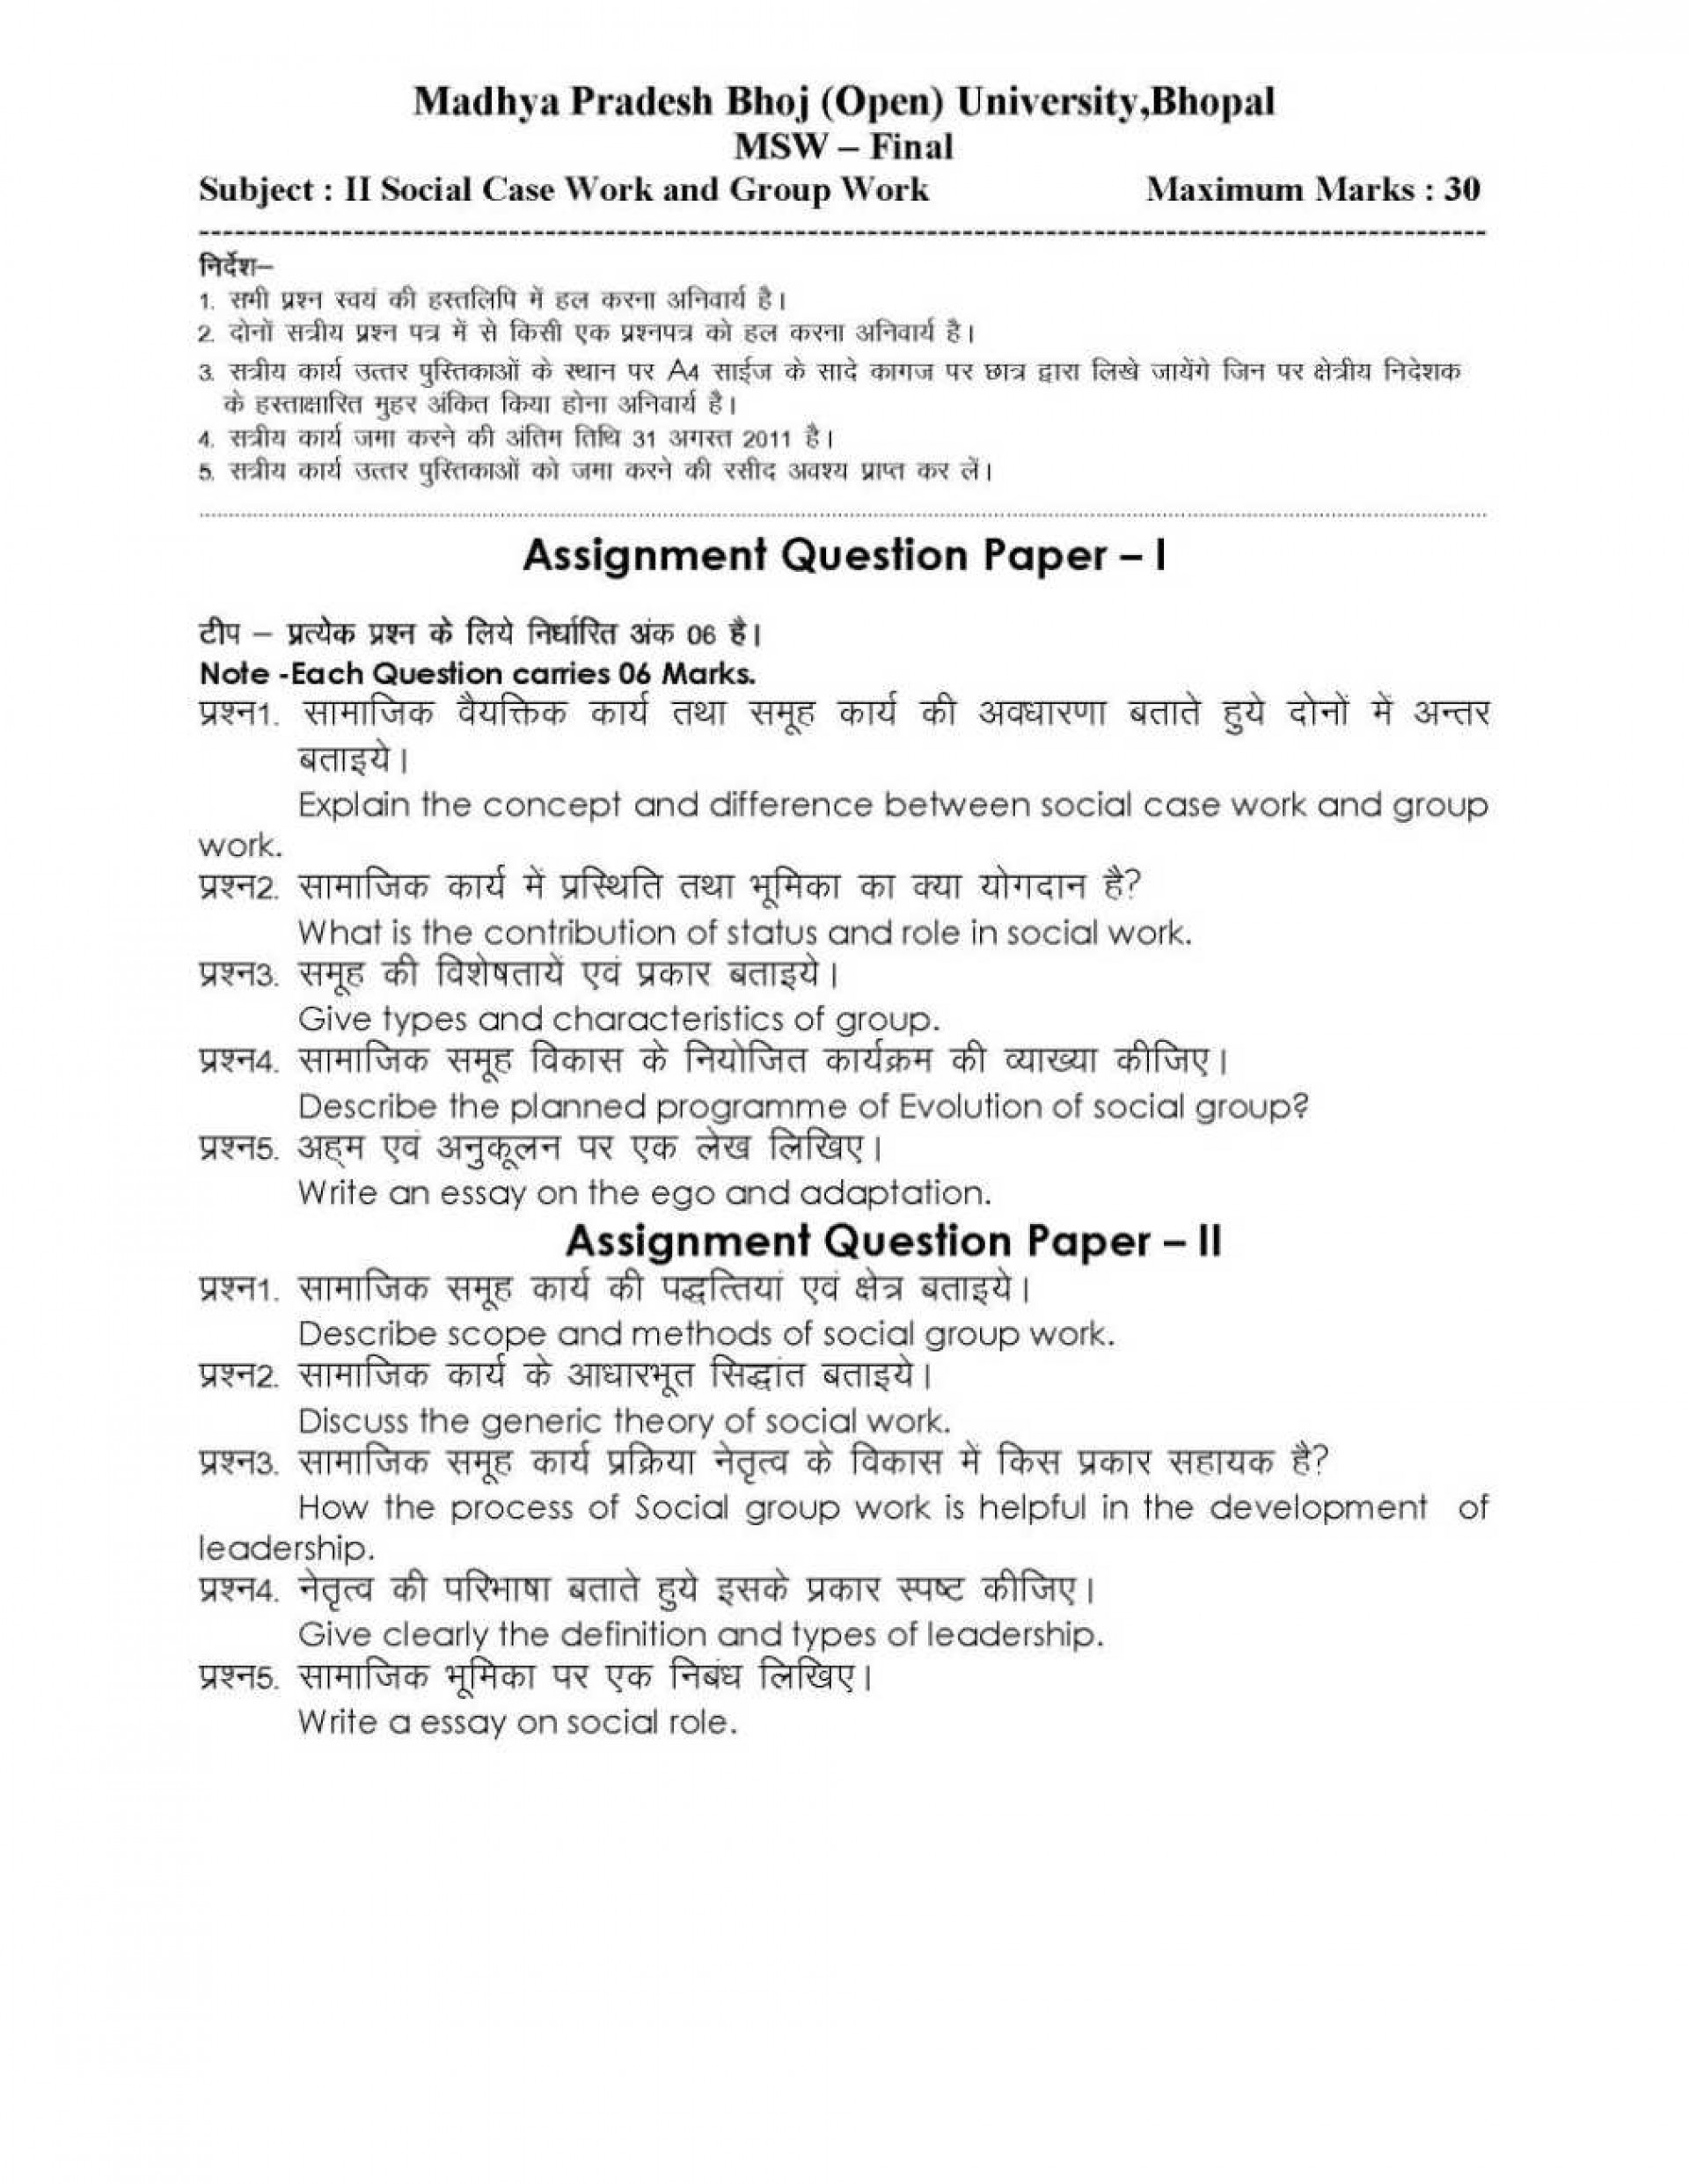 012 Bhoj University Bhopal Msw Definition Essays Surprising Essay Examples Family Heroism Pdf 1920